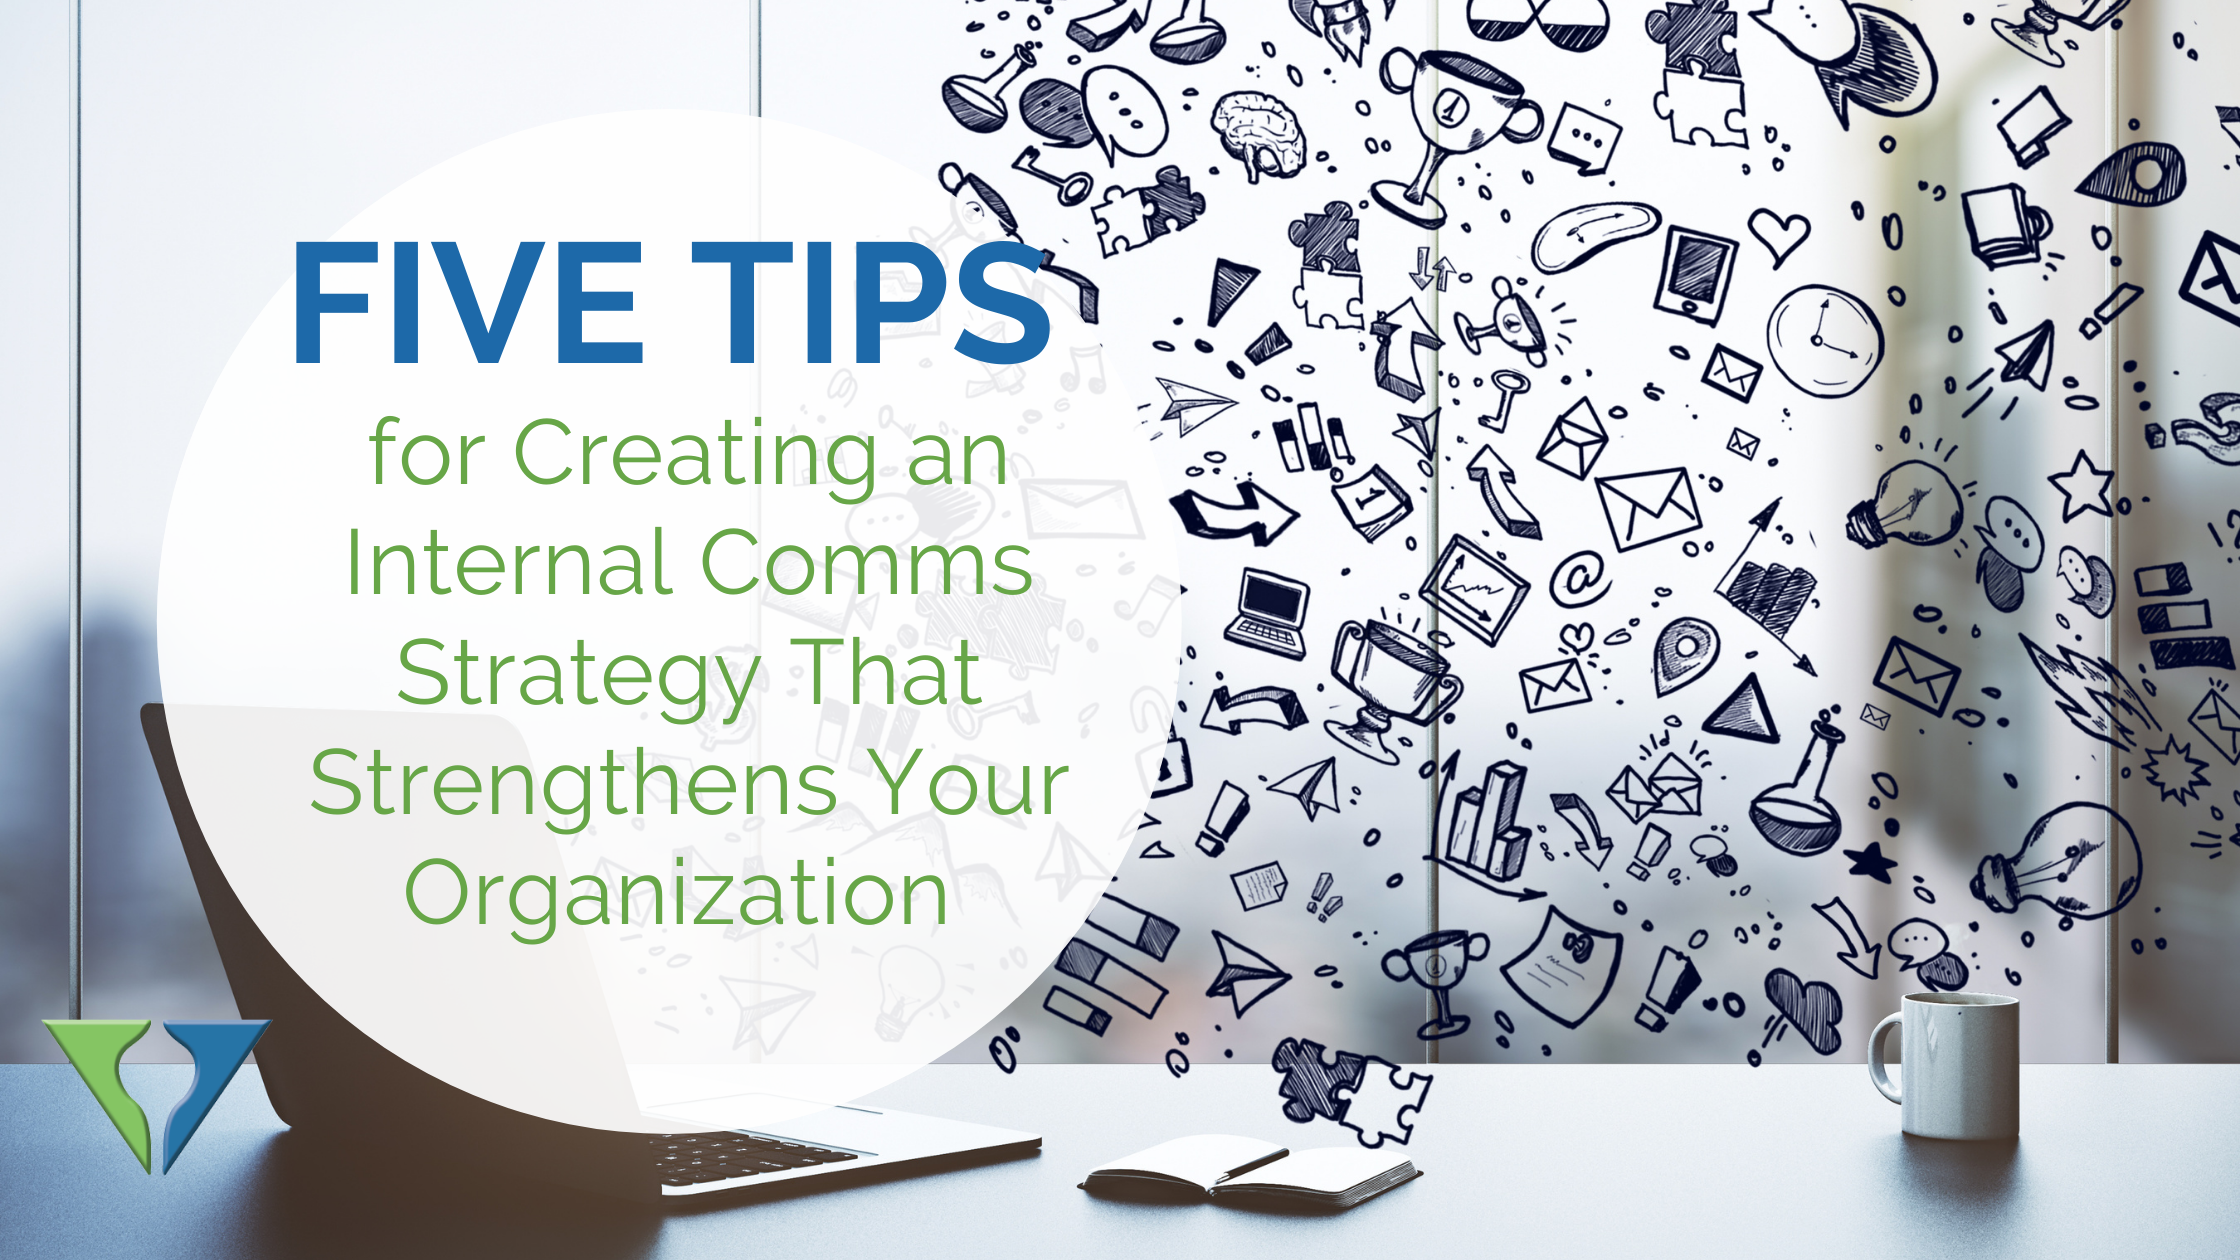 5 Tips for Creating a Comms Strategy That Strengthens Your Organization